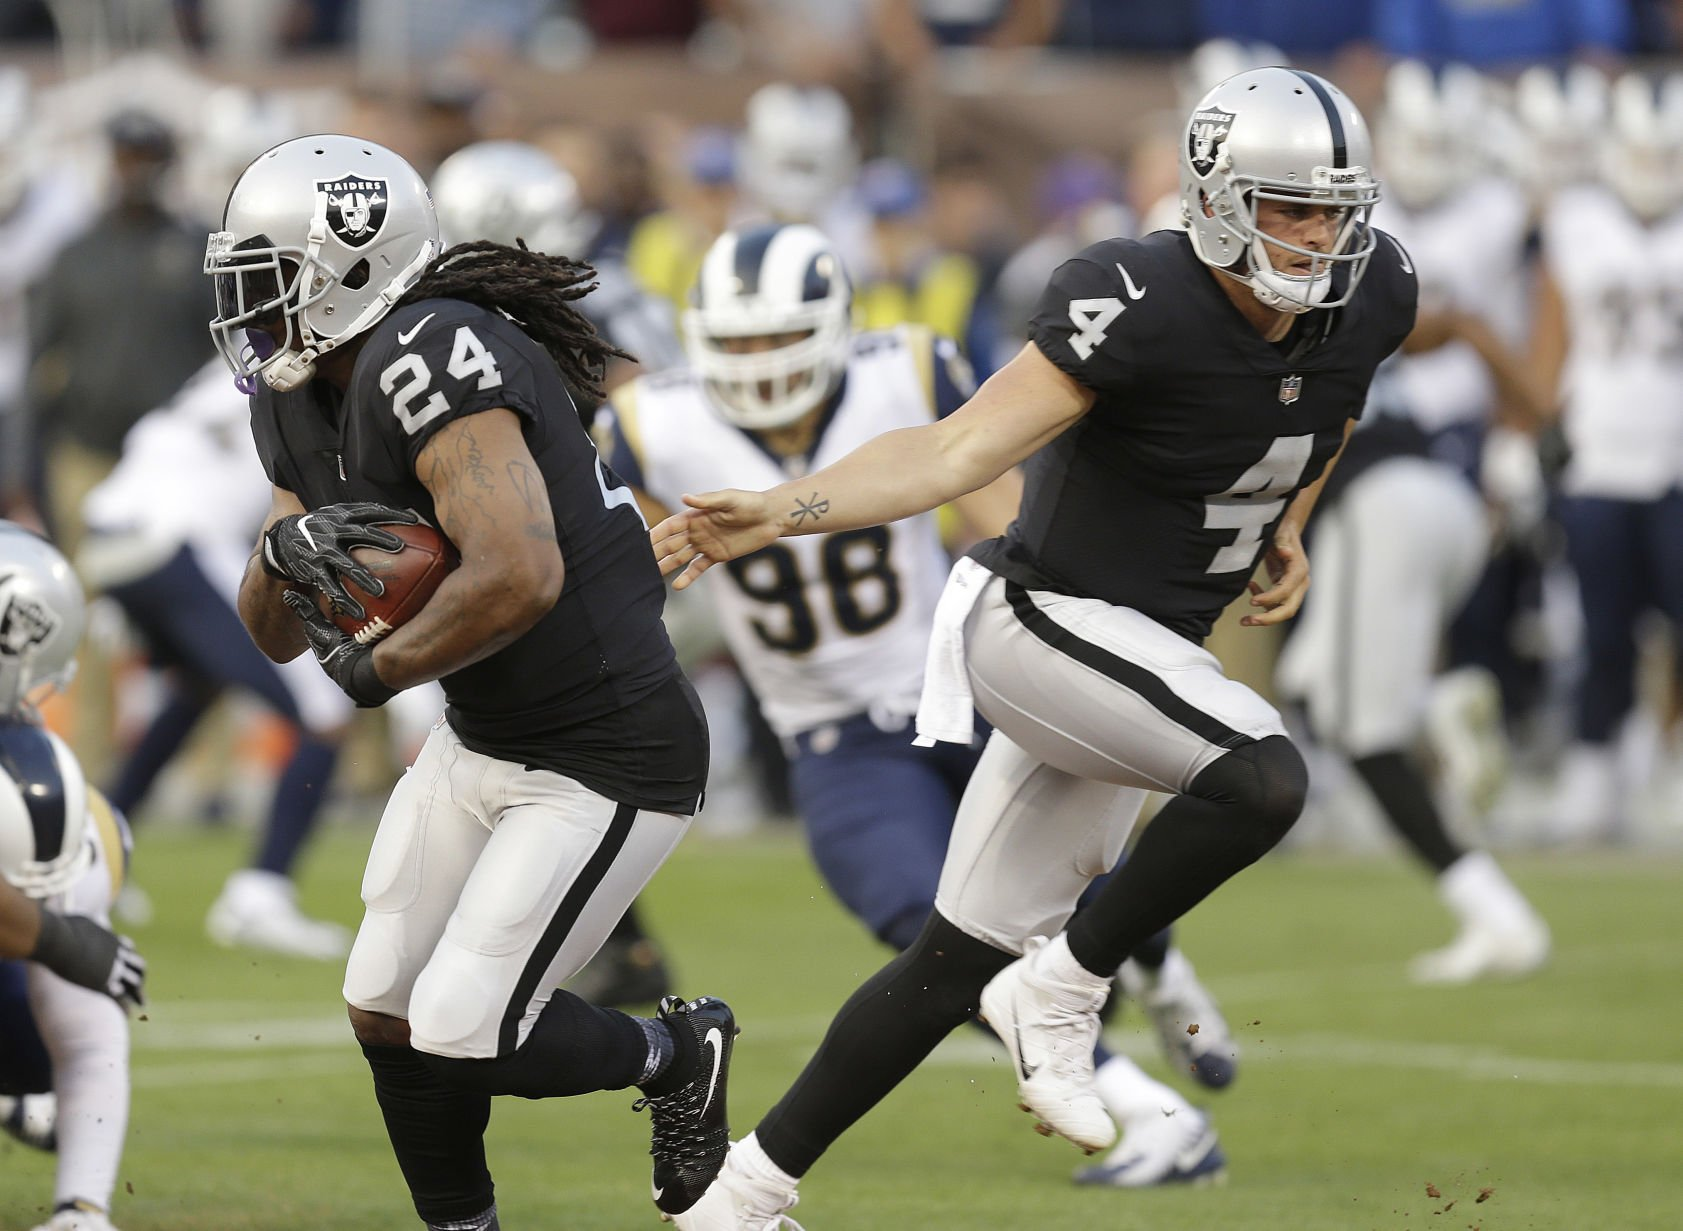 Raiders retain Statesville's Borders for practice squad